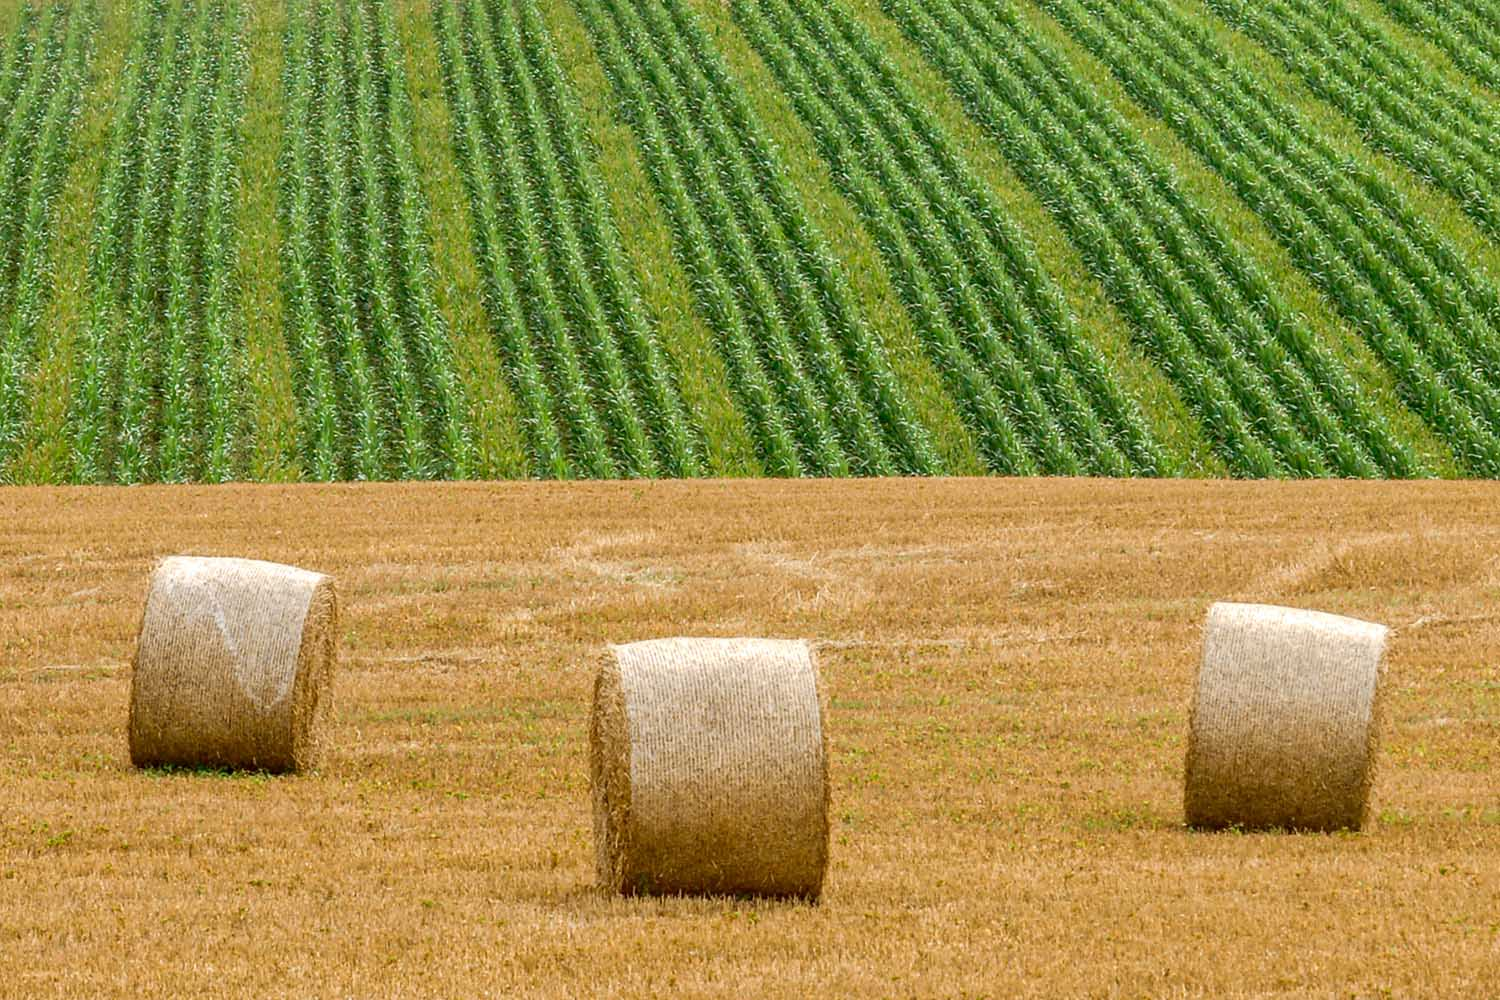 Copy of Contrasting fields on nearby farmland